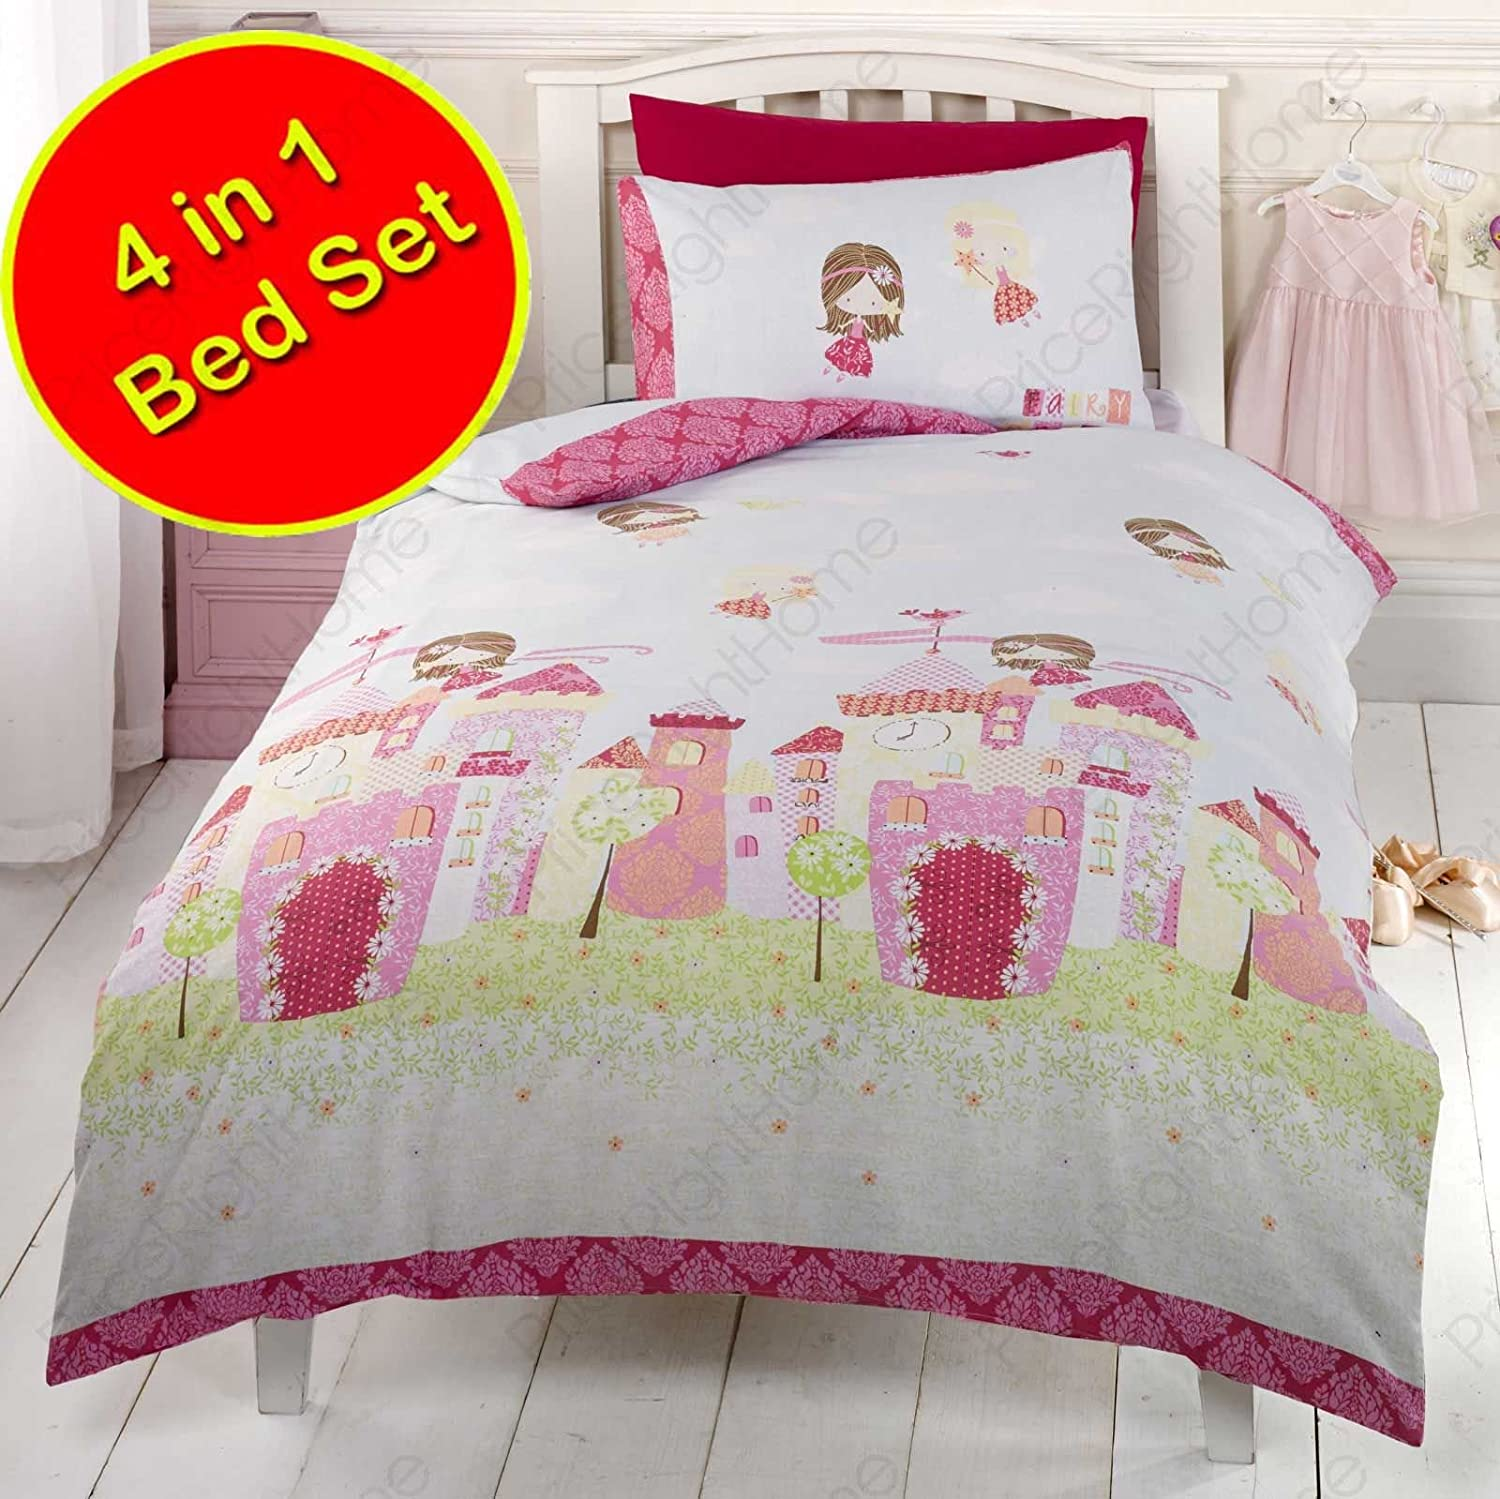 Rapport Fairy Castle 4 in 1 Junior Bedding Bundle (Duvet + Pillow + Covers)